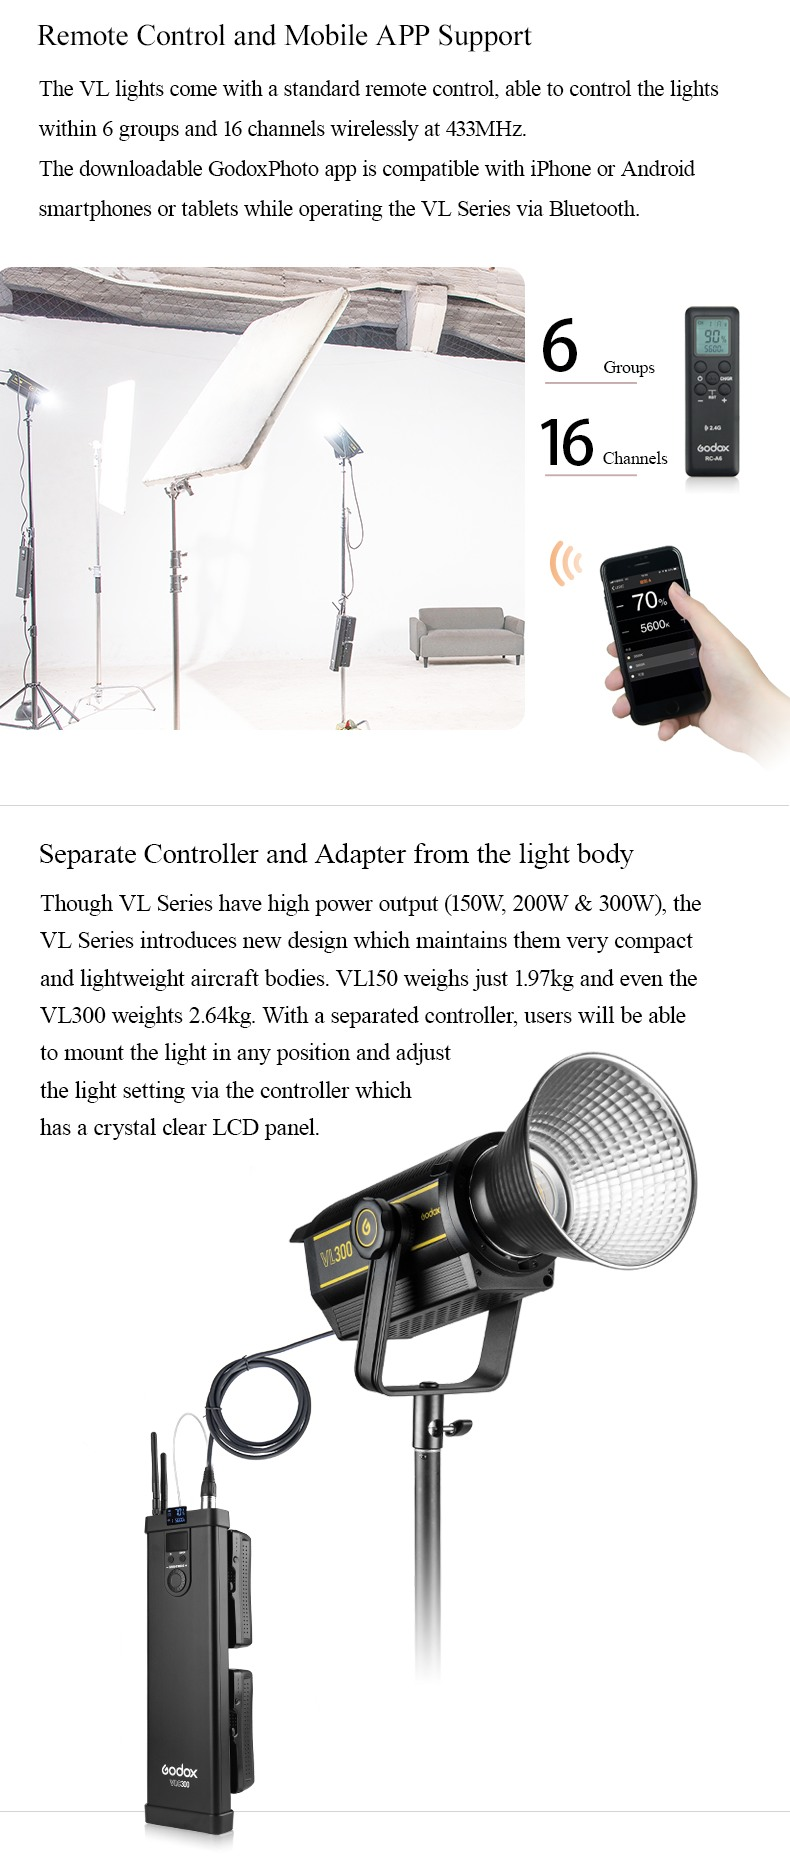 Godox VL series Remote Control and Mobile App Supper.